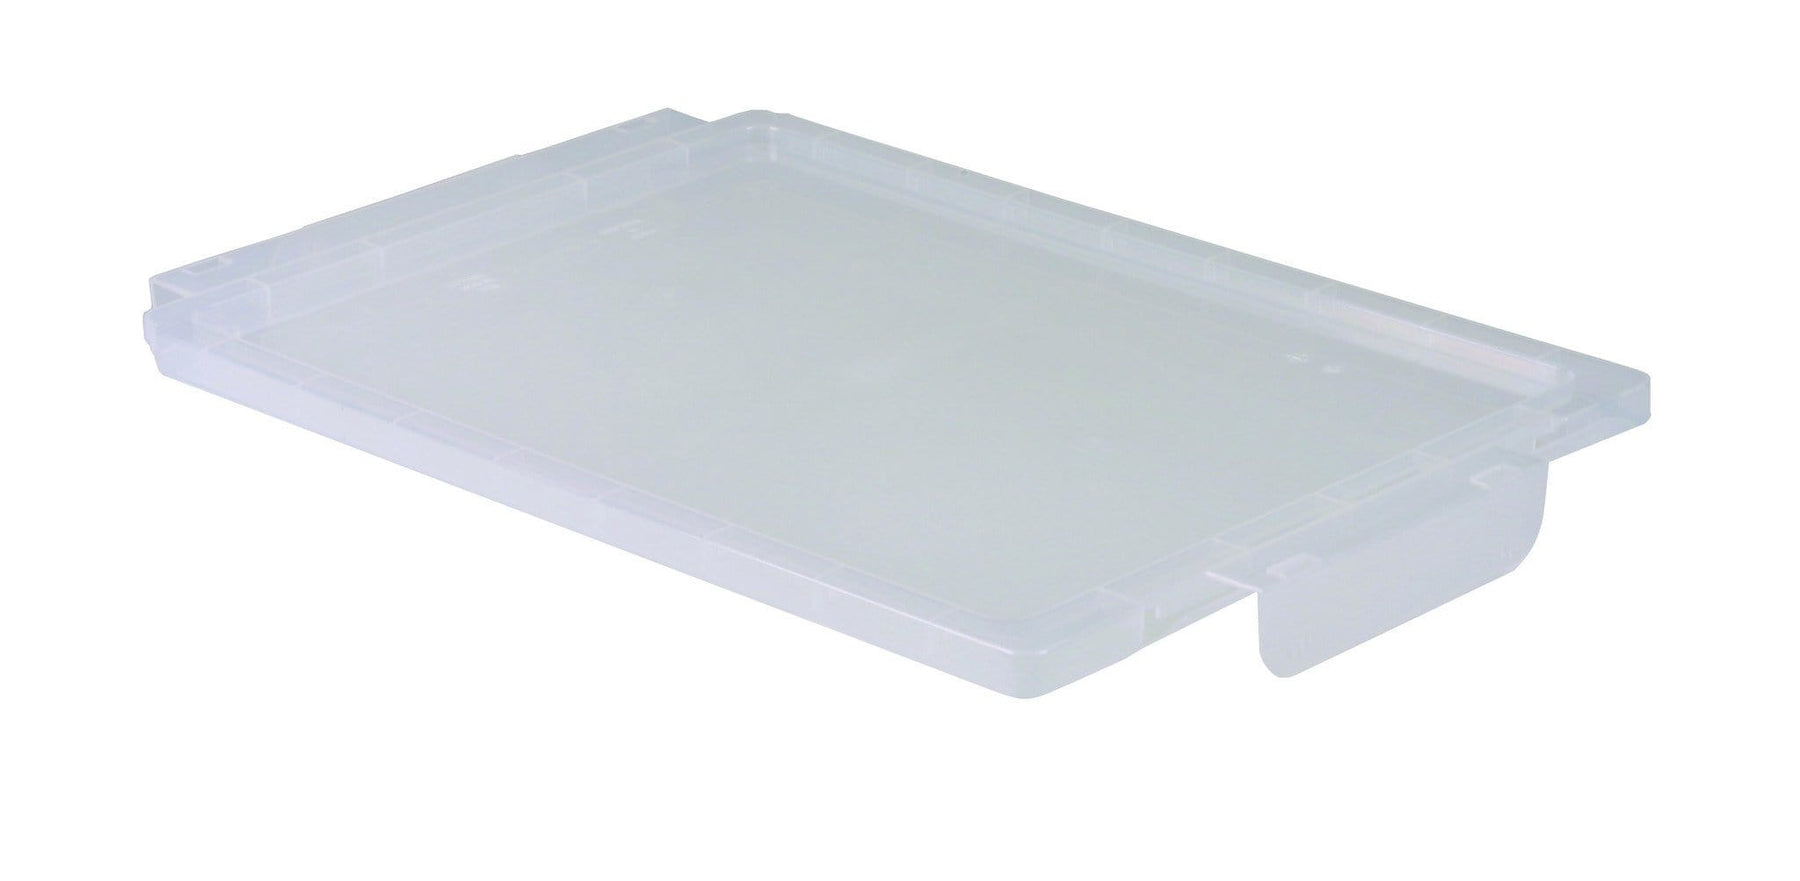 Lid for Gratnells Trays (To suit F1, F2, F25 & F3) - Set of 6